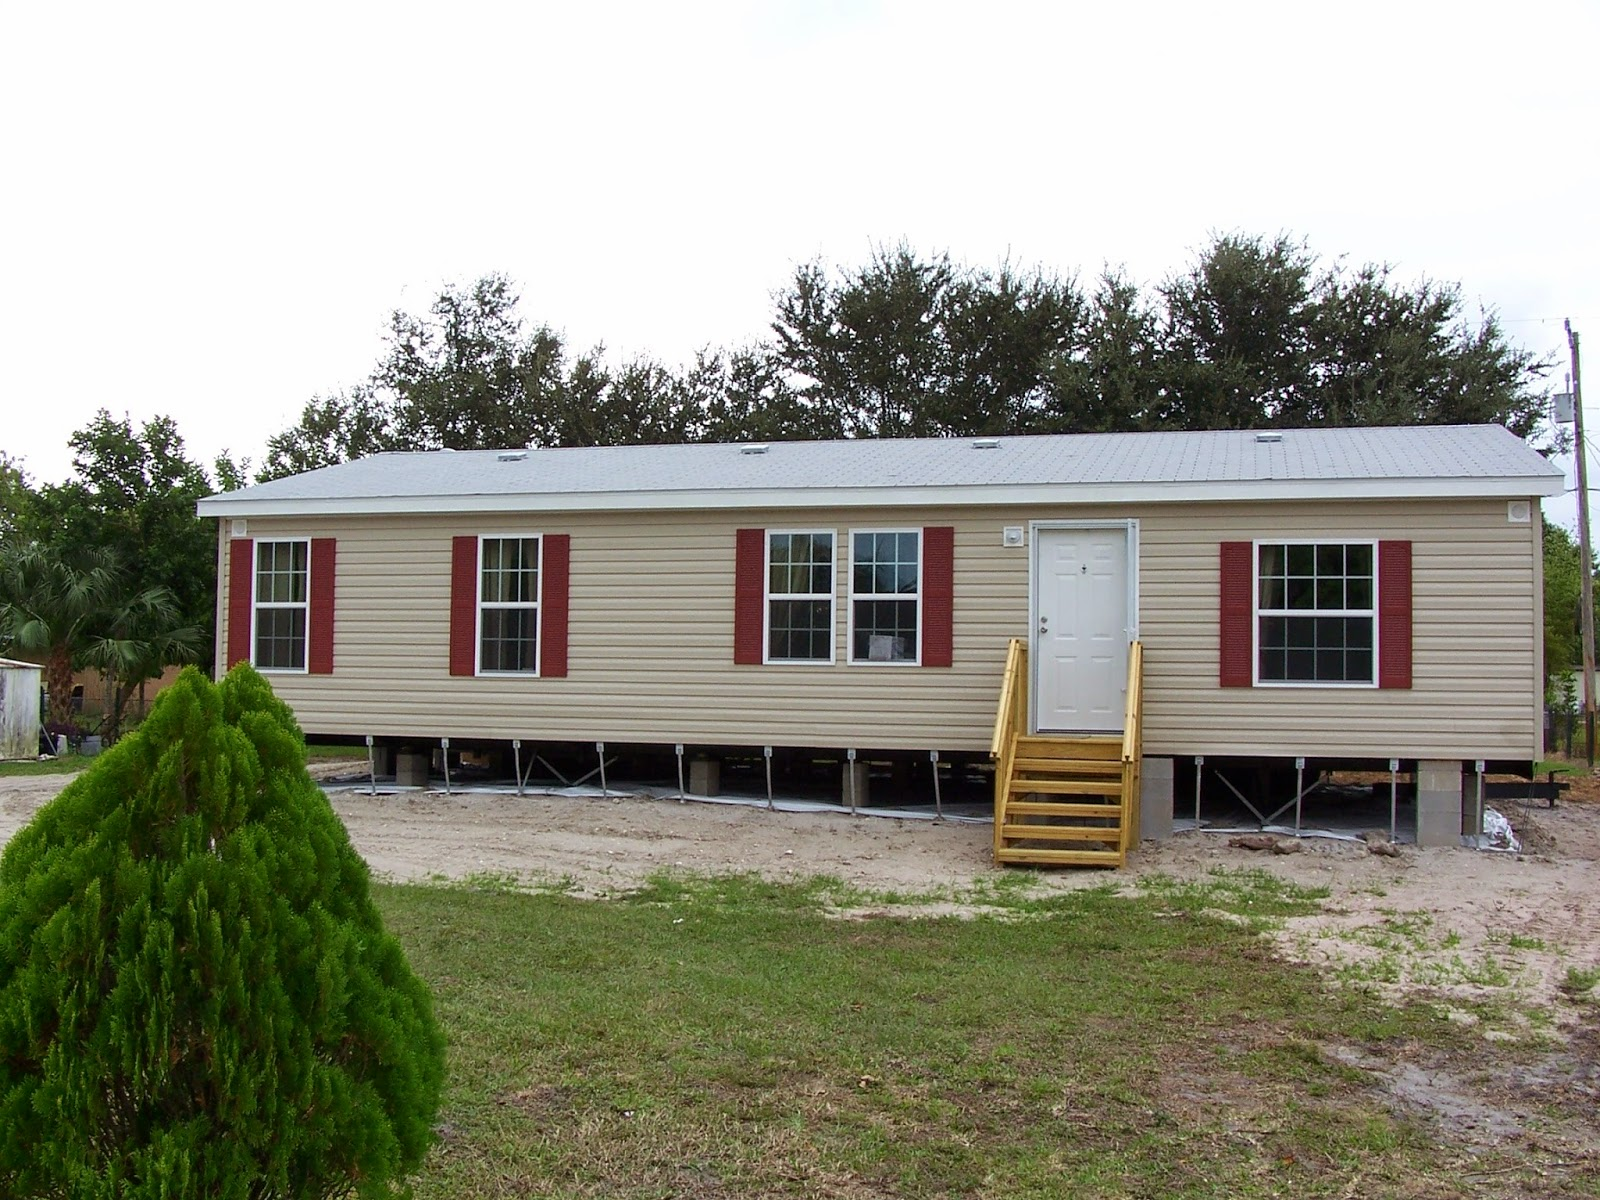 Zack 55 395 on display 3 bedrooms 2 baths double wide for Large modular homes